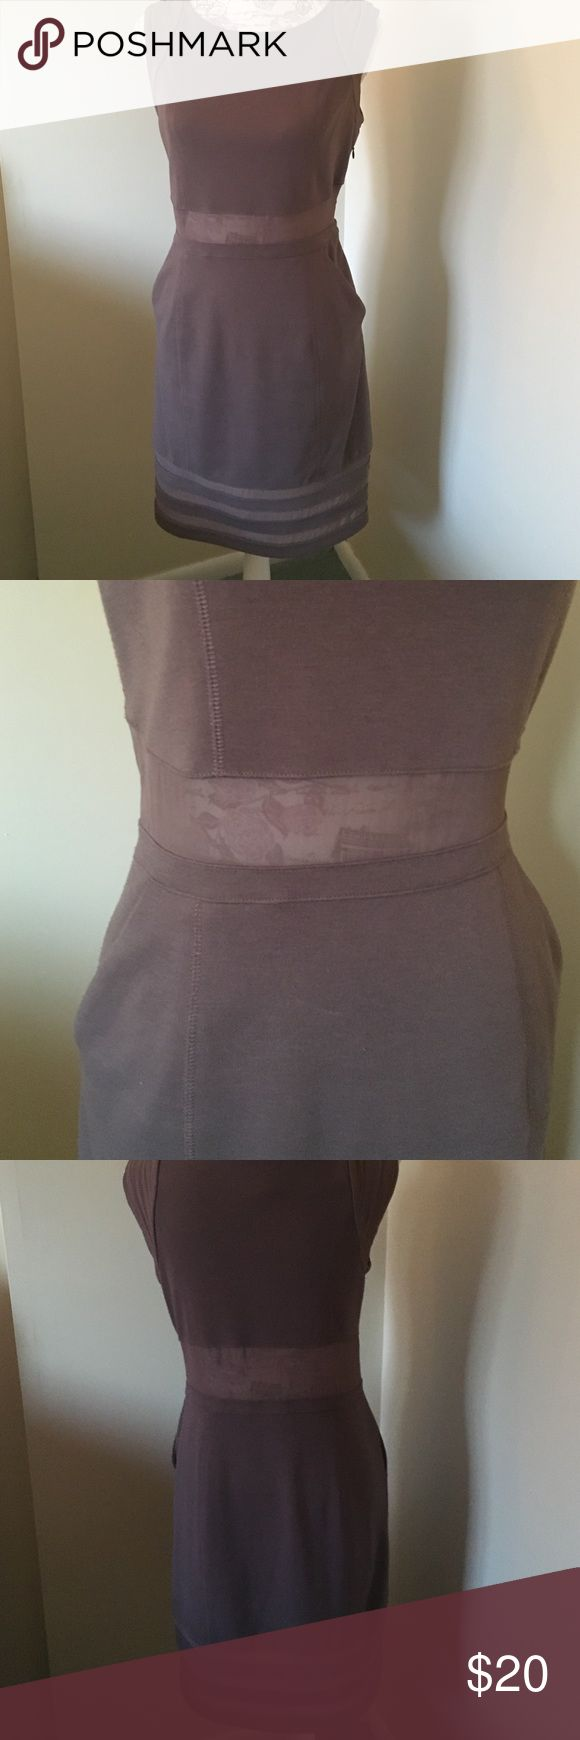 BCBG Generation dress BCBG Generation dress. Taupe in color. Pre-loved but lots of love left in this super sexy but professional dress.   Small Pailin sport on the front as shown in pic. But not really noticeable.  Size 8 but I would say fits a 6 better BCBGeneration Dresses